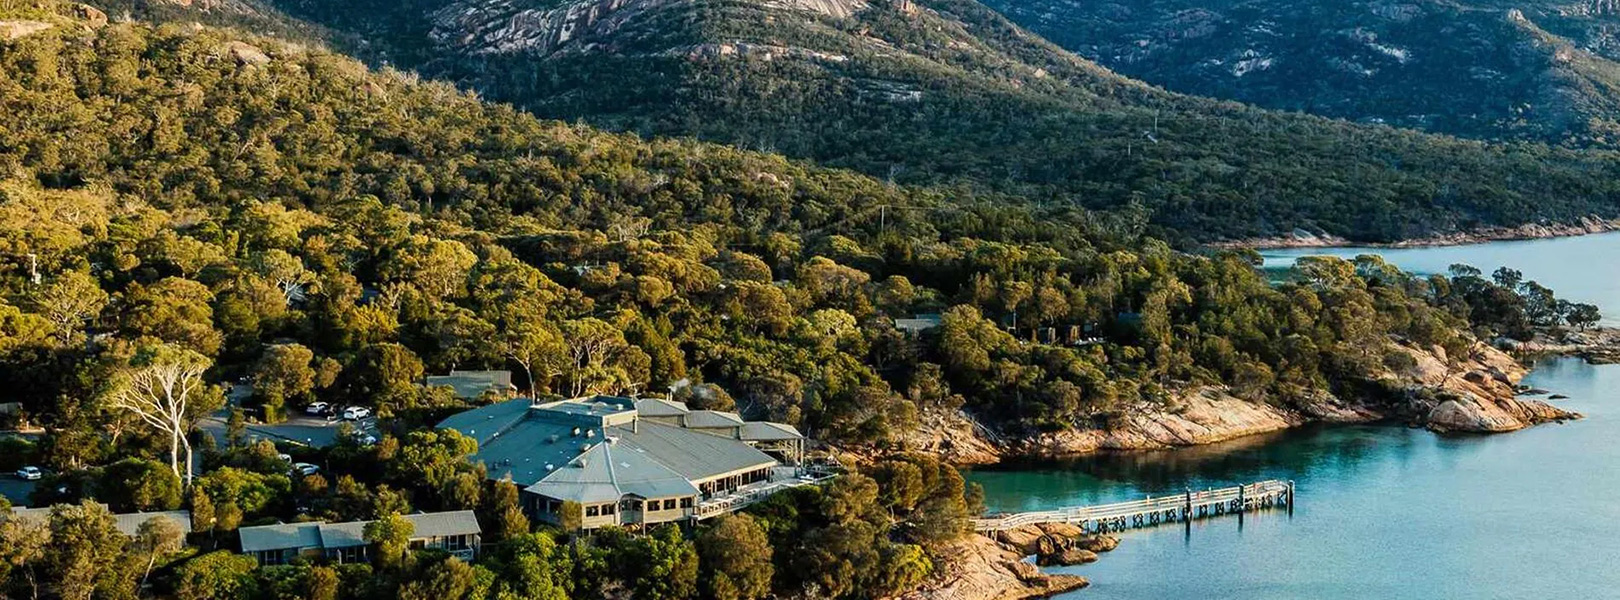 Aerial view of Freycinet Lodge